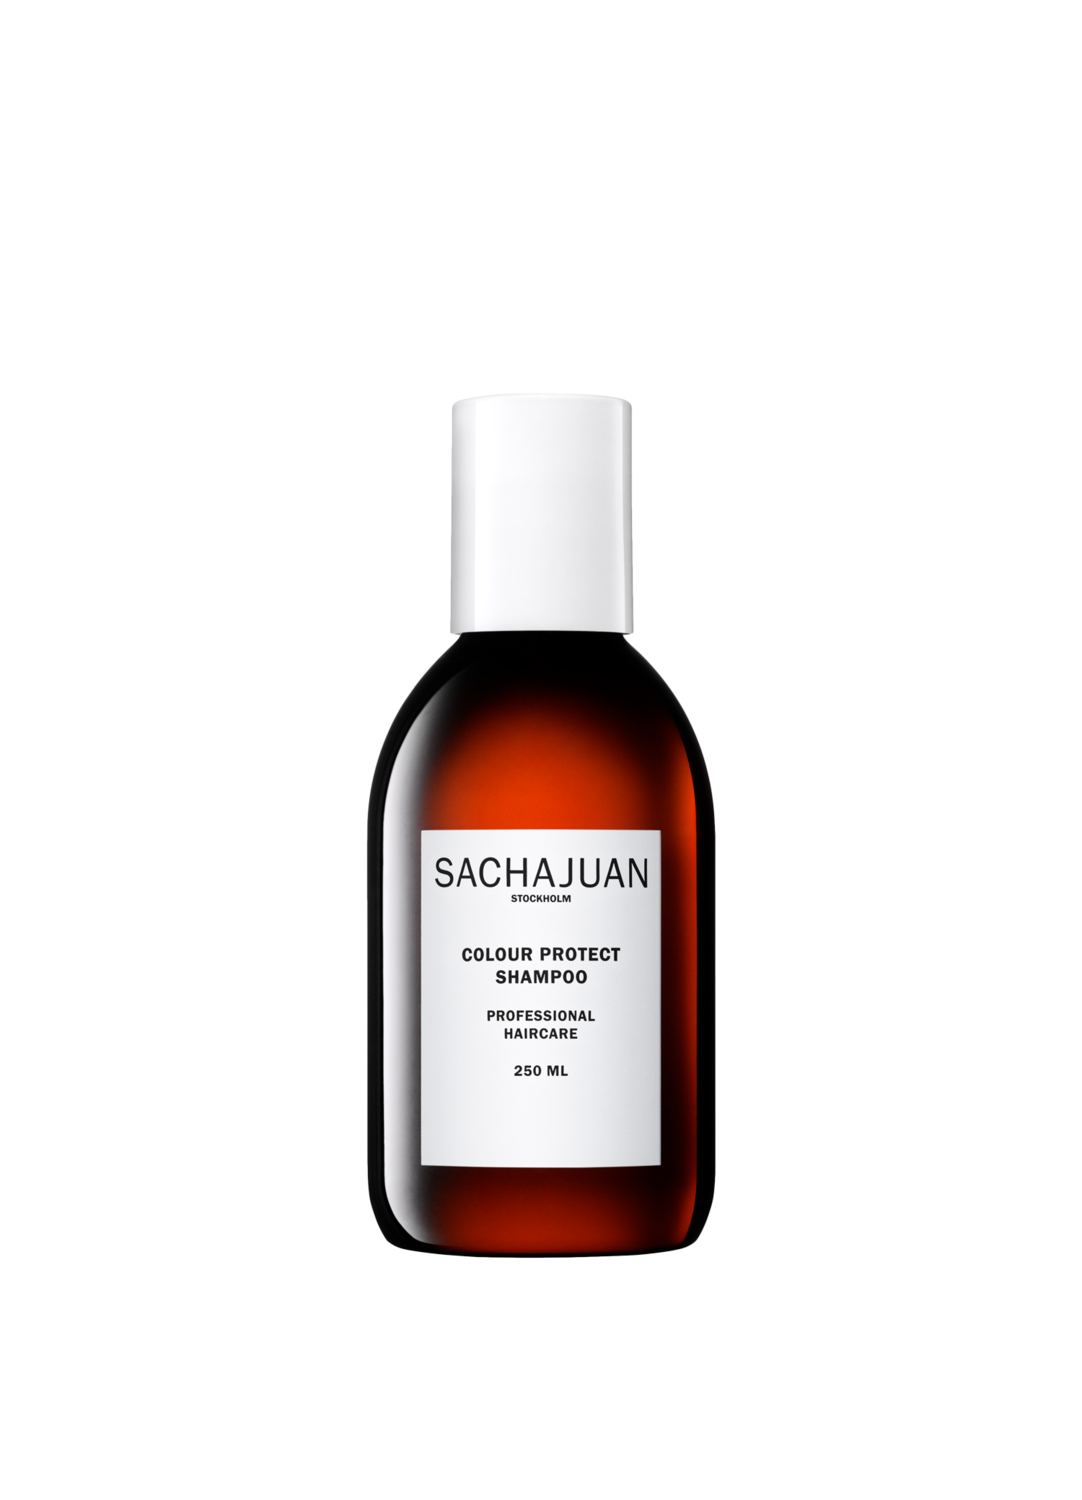 sachajuan | color protect shampoo[product_type ]sachajuan - Kiss and Makeup